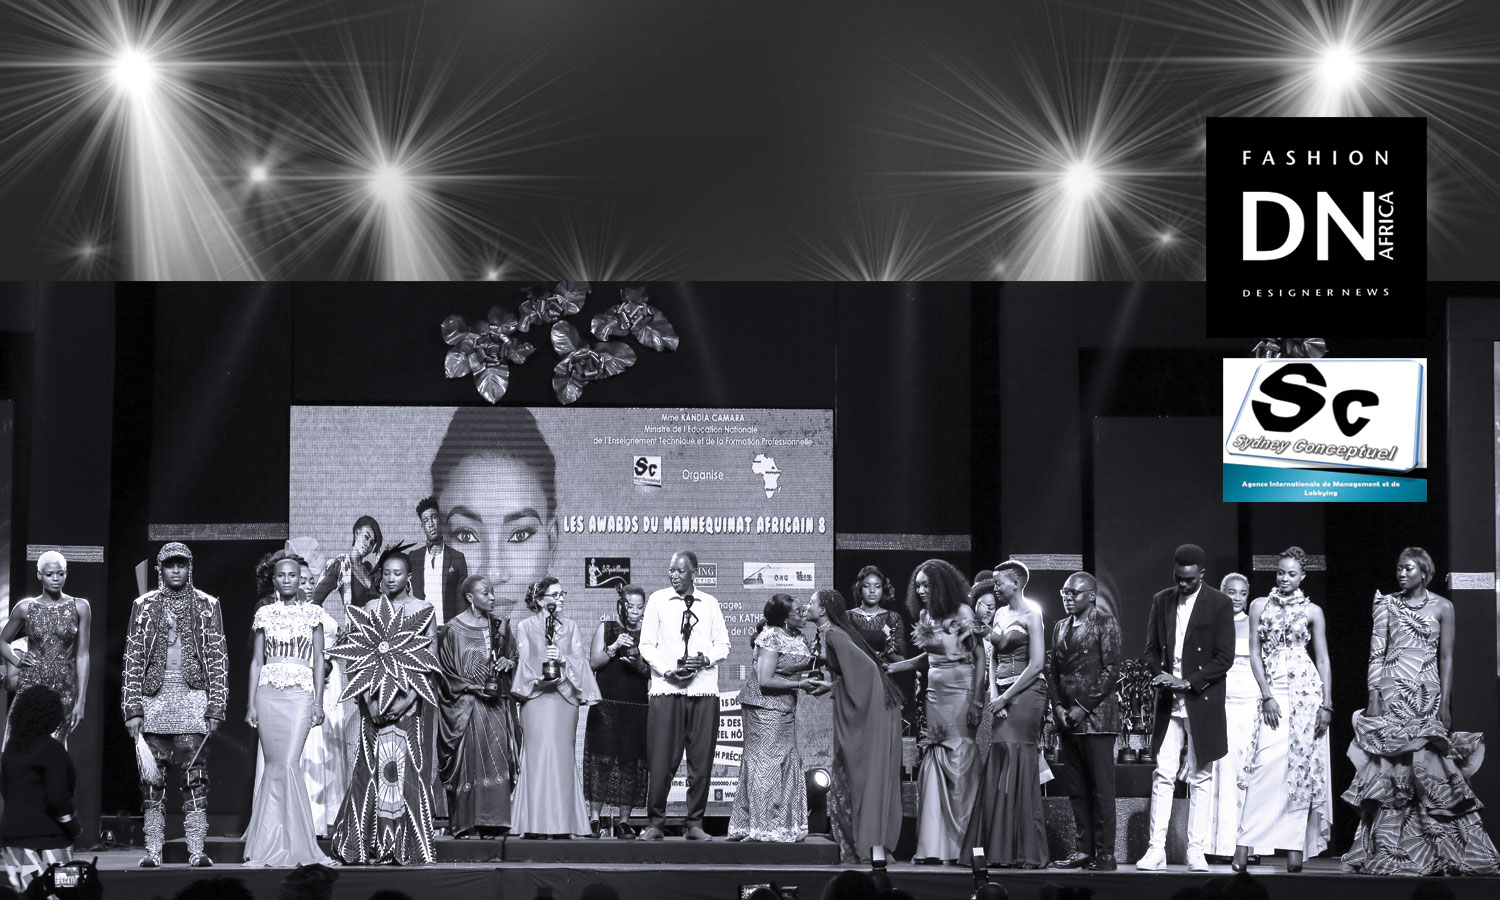 african-fashion-magazine-ama8-les awards du mannequinat africain-BALI LAWAL FROM ITALY - christelle-tongna FTOM CAMEROUN -CELINE MINET-International-Model-from-TOGO - dn africa - STUDIO 24 NIGERIA, FATIM SIDIME FOUNDER OF LA SAGA DES MANNEQUINS - SYDNEY CONCEPTUEL